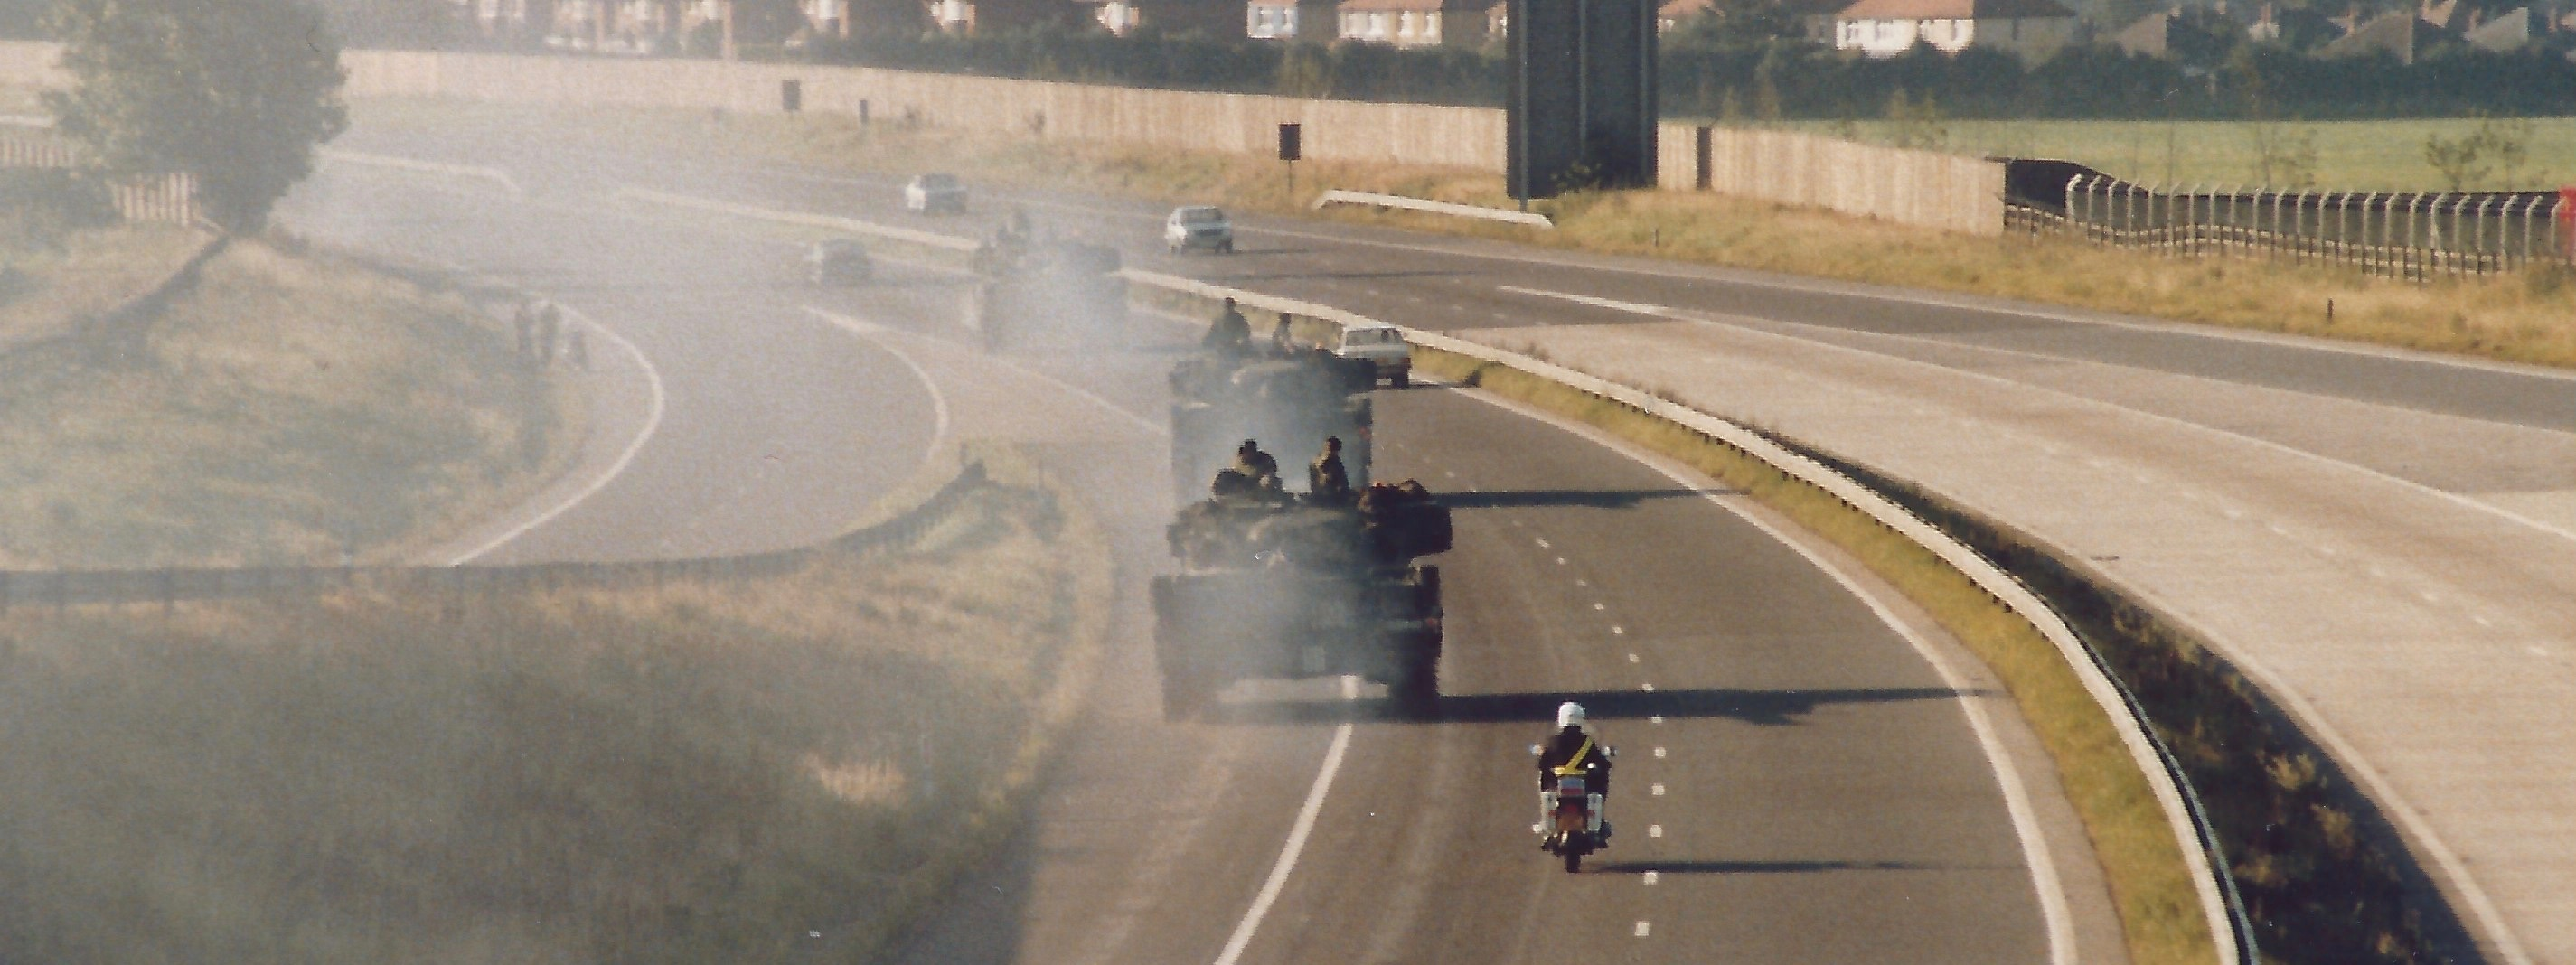 A photograph showing a convoy of tanks heading away on a motorway with a police outrider escort